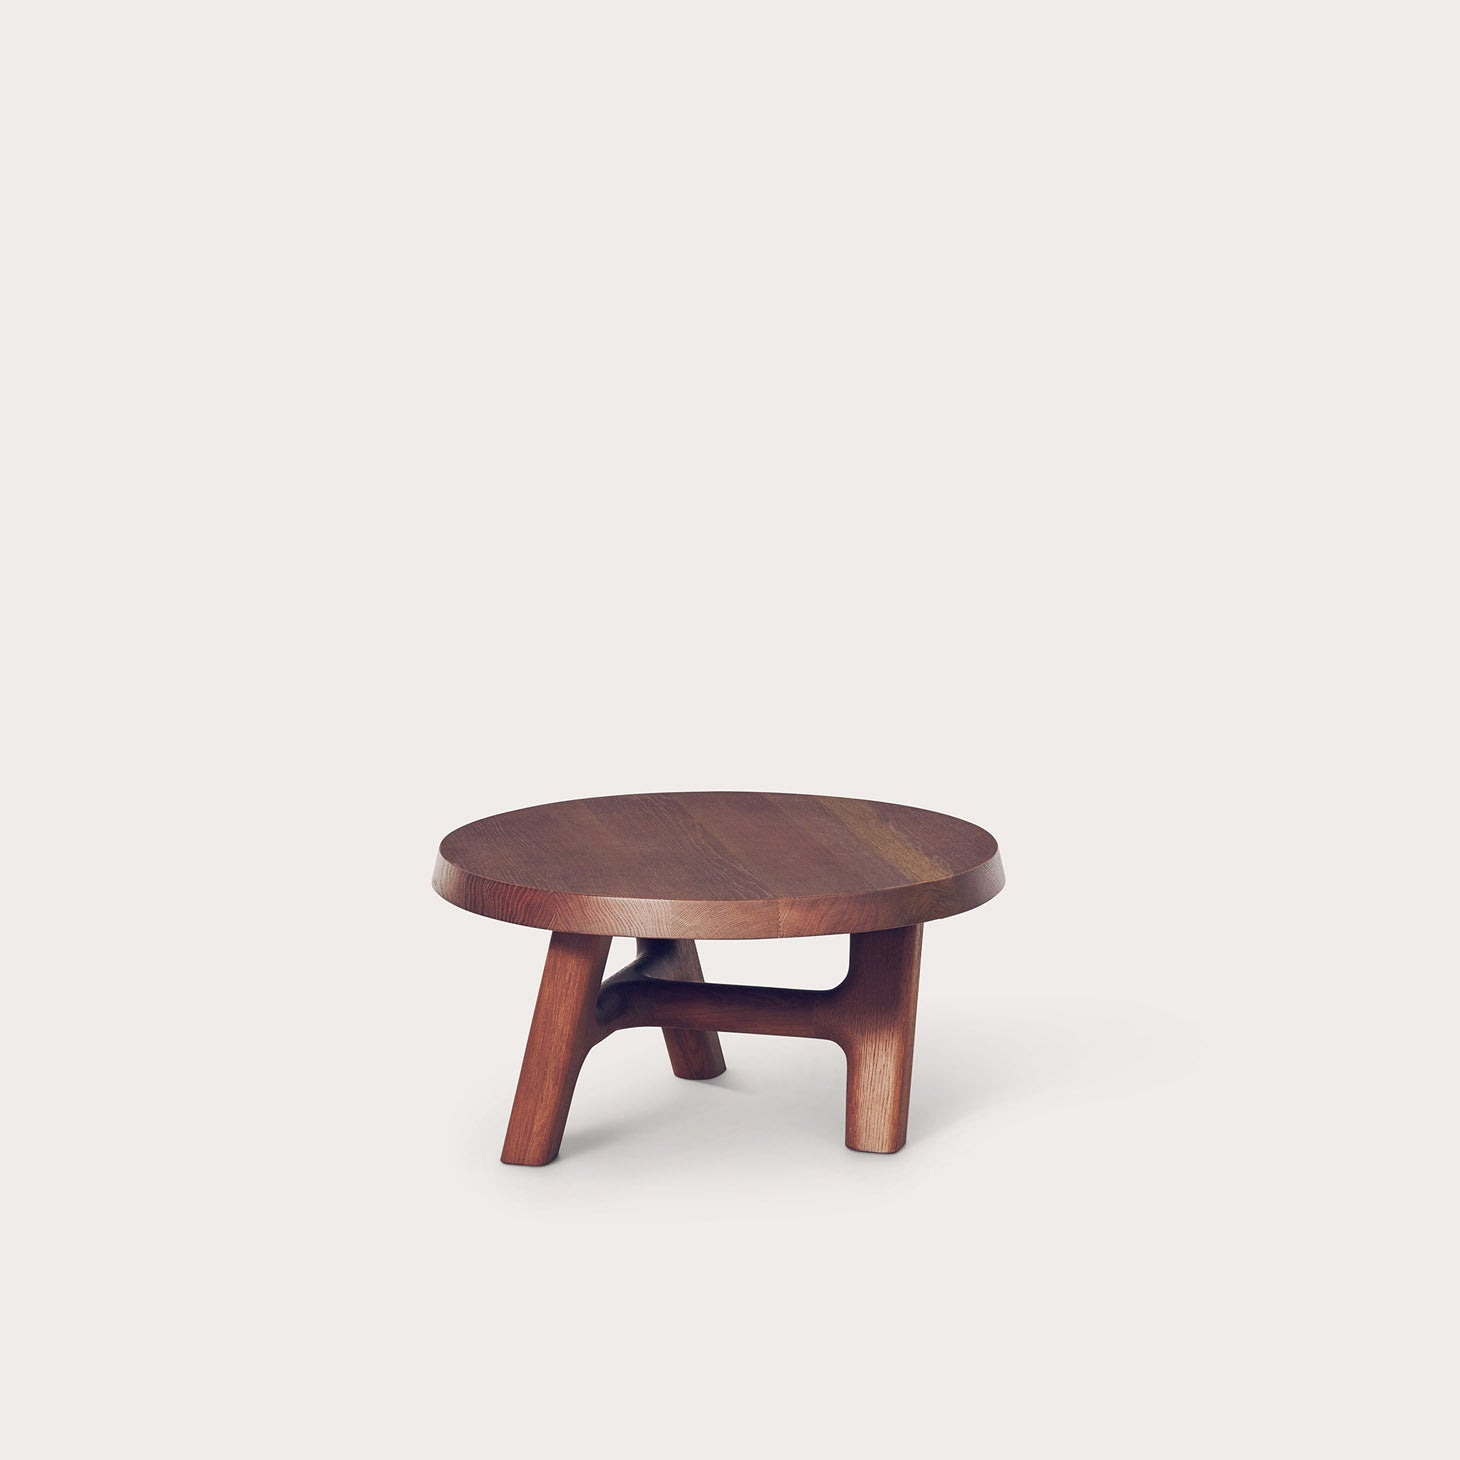 BUI Tables Jean-Pierre Tortil Designer Furniture Sku: 008-230-10409